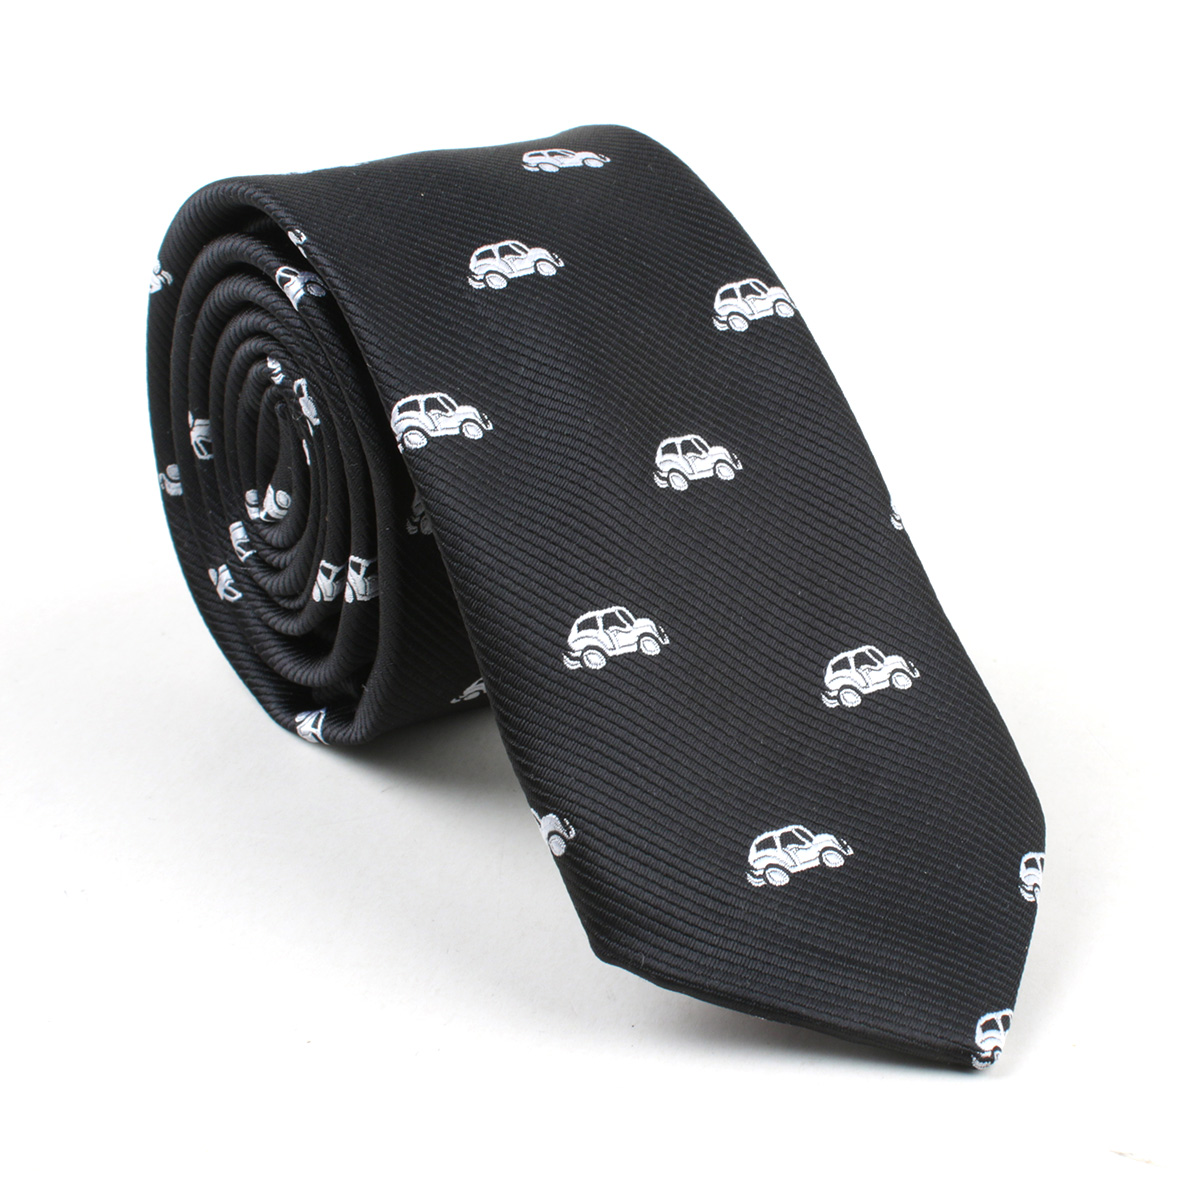 Formal Polyester Jacquard Neckties for Men Car Pattern Neckwear Tie for Wedding Party